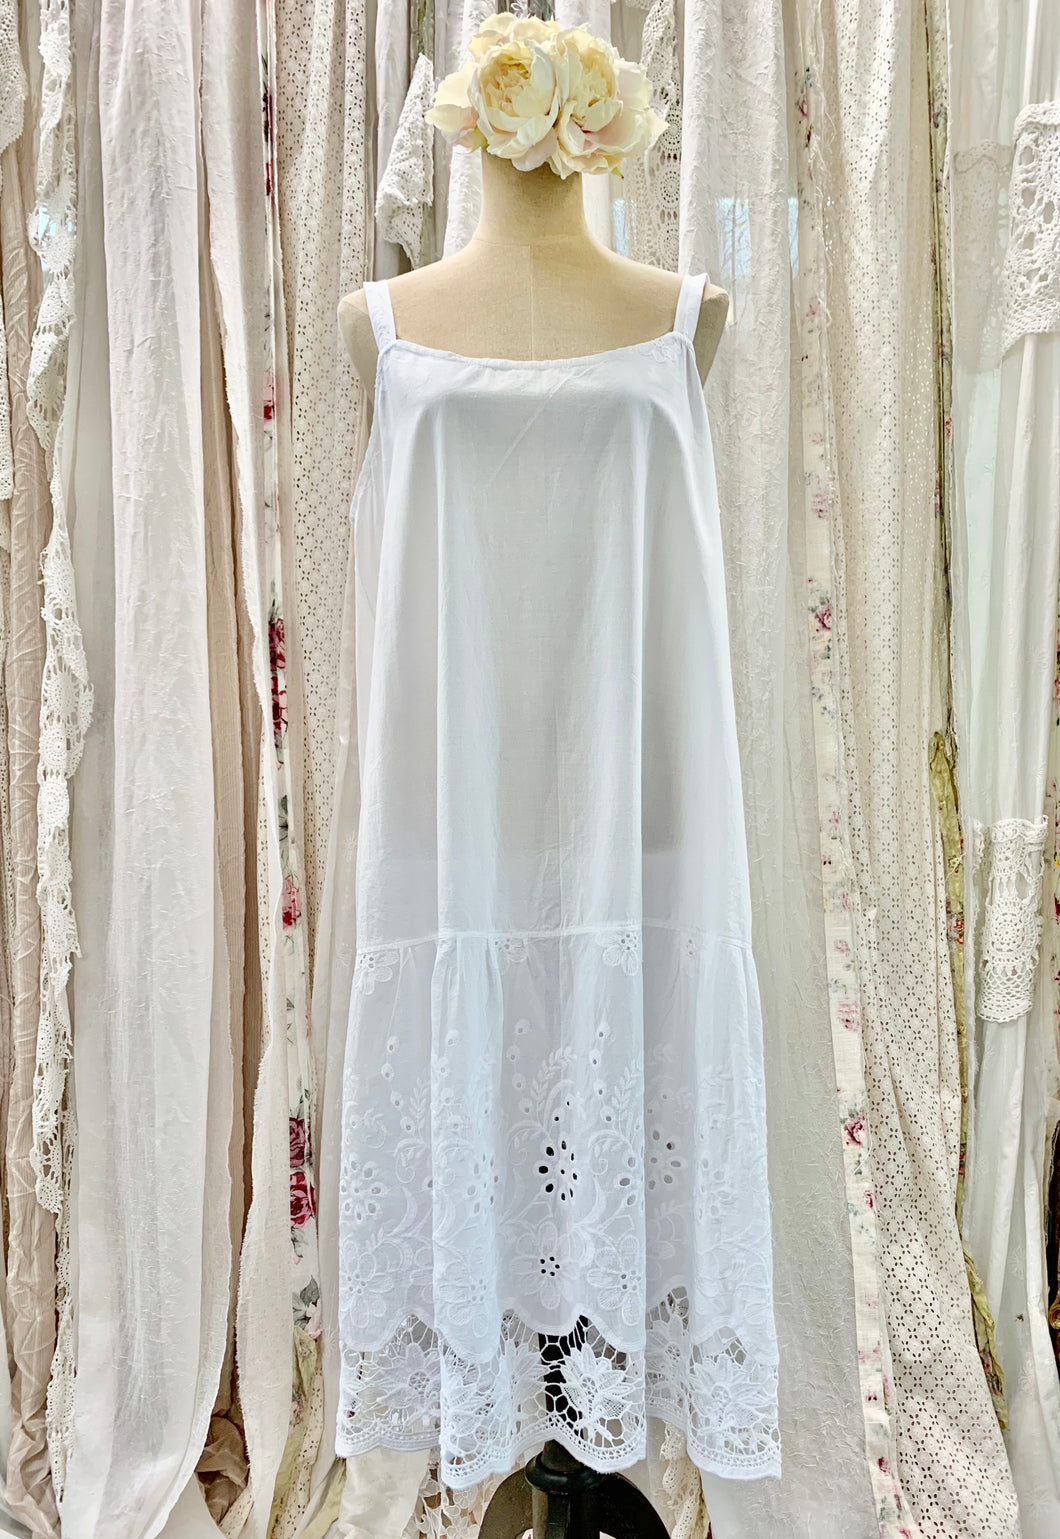 Cotten embroidered slip